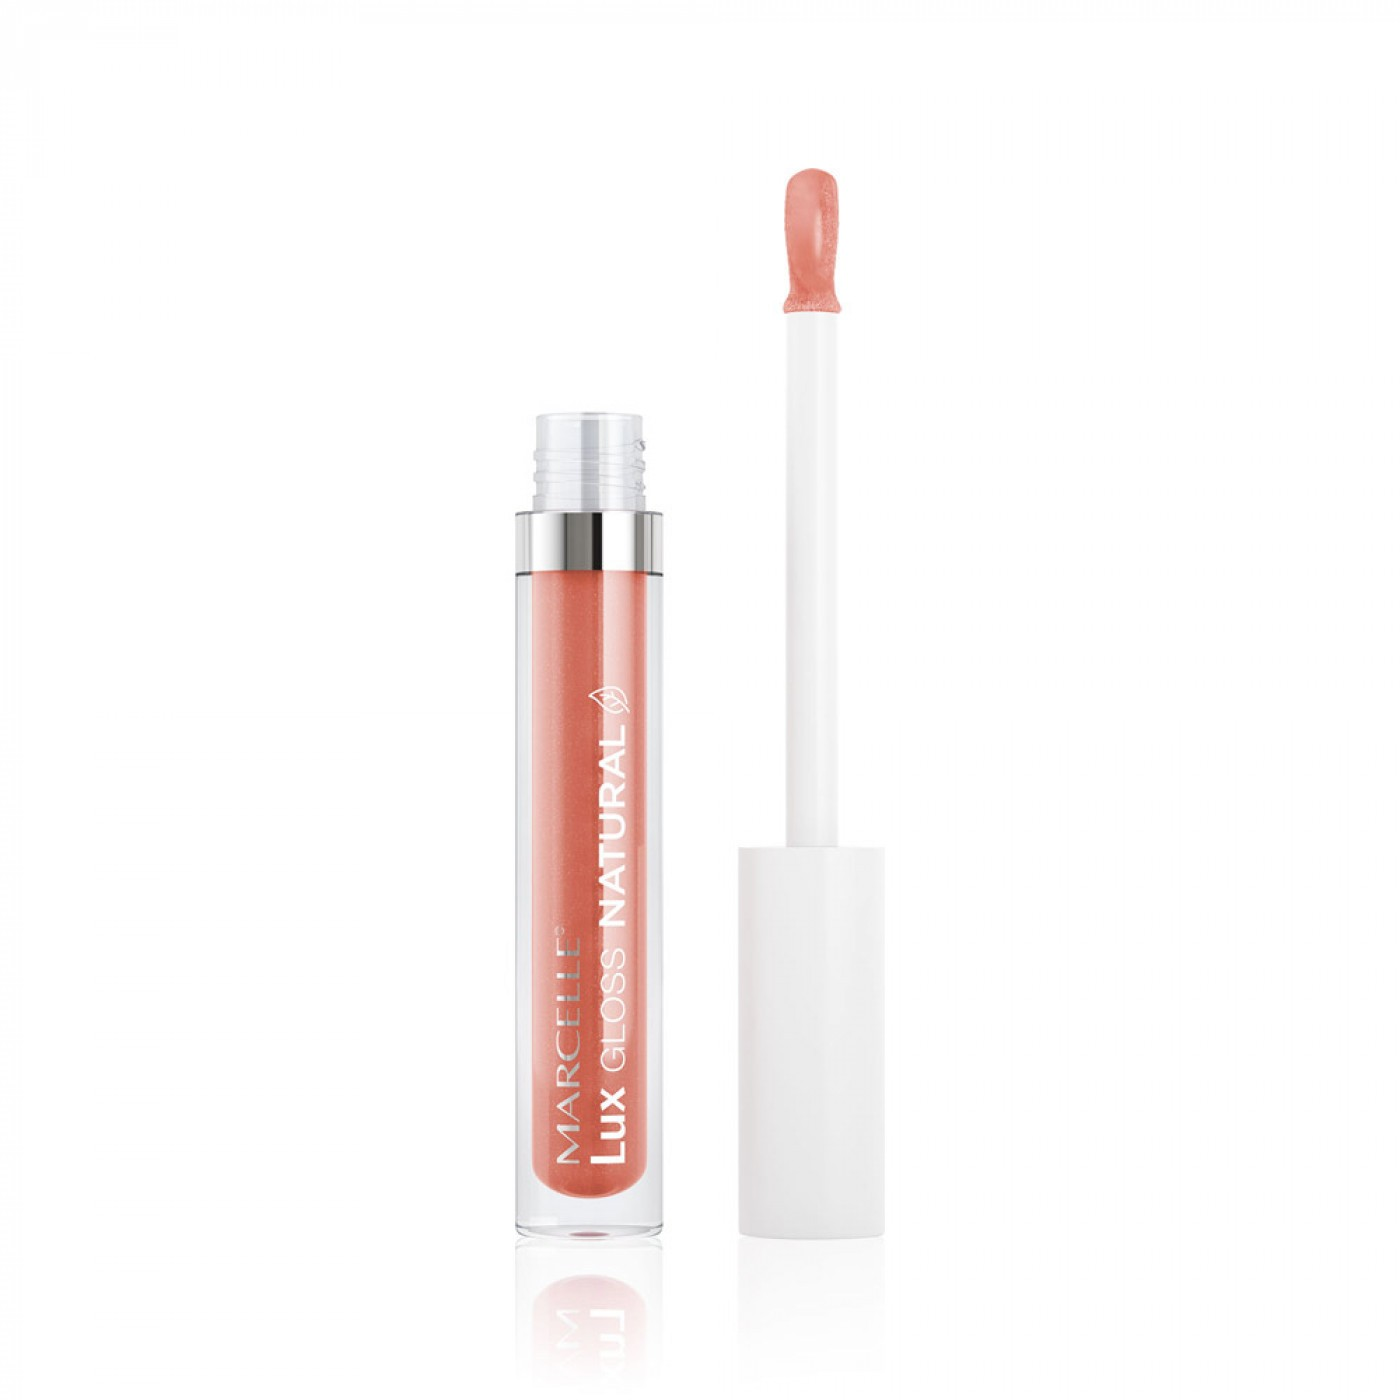 LUX GLOSS NATURAL - PEACH NUDE